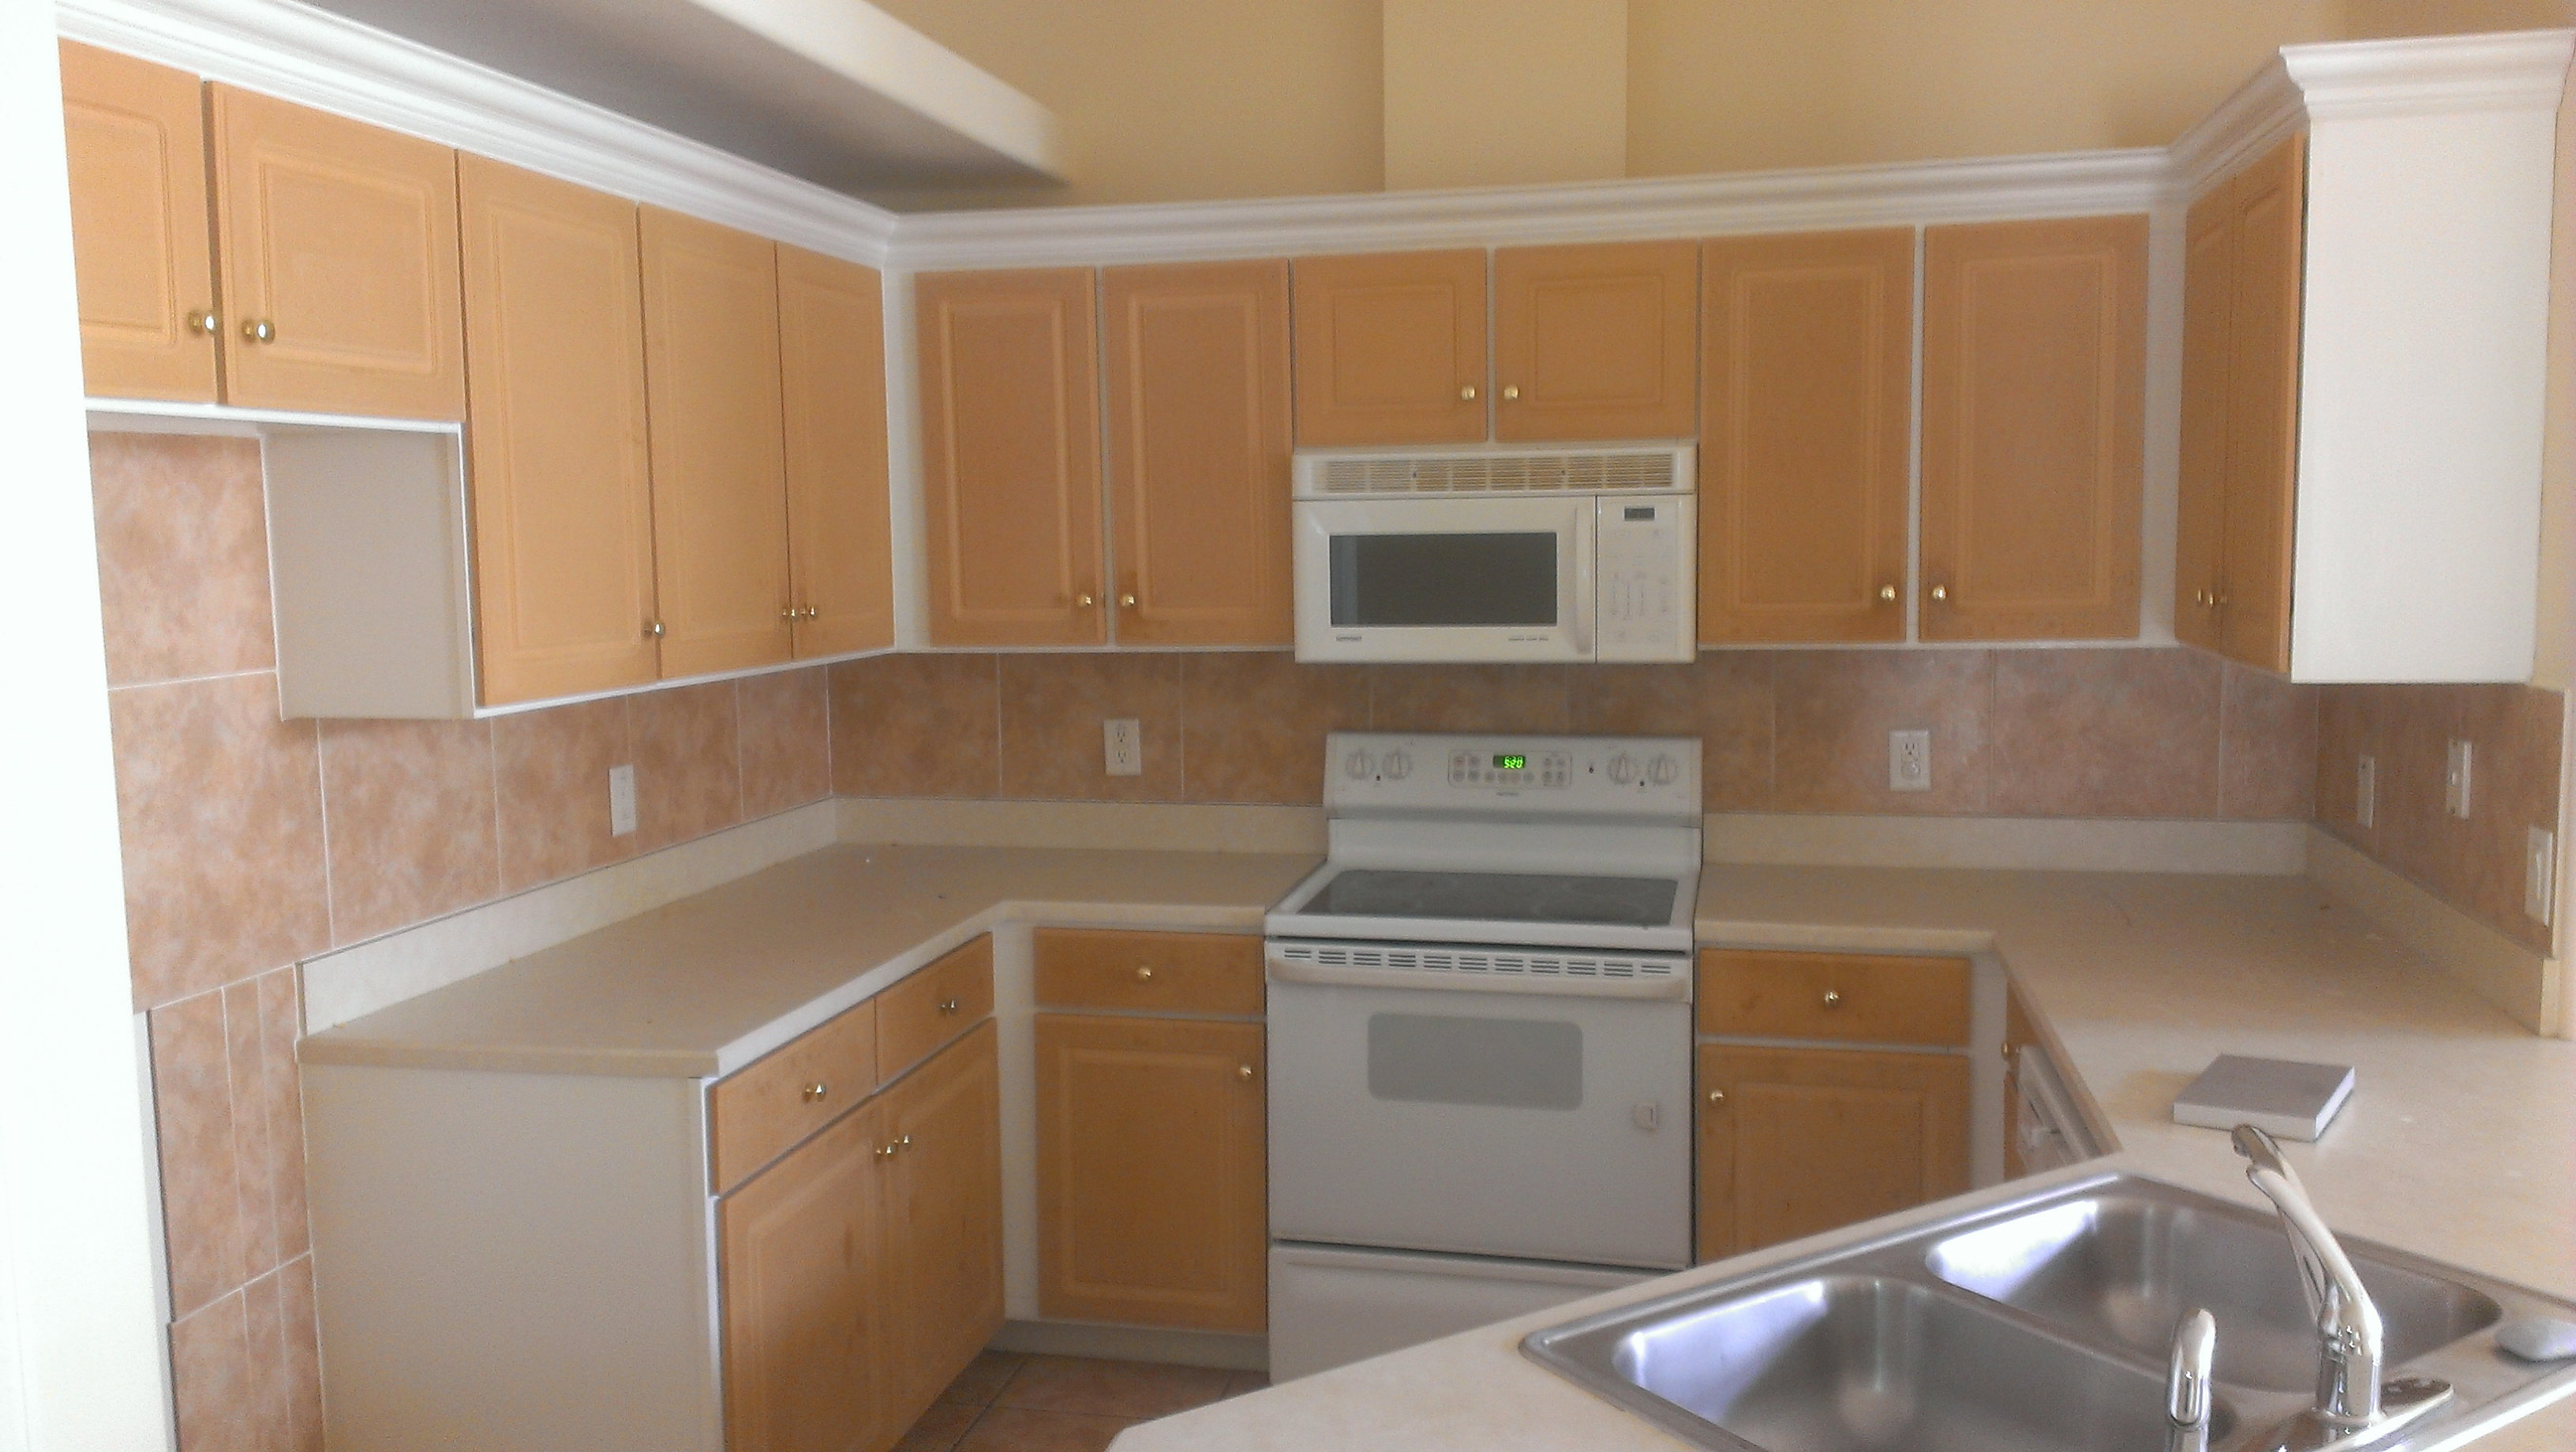 Cabinet Refacing Contractors In Daytona Beach And North Florida